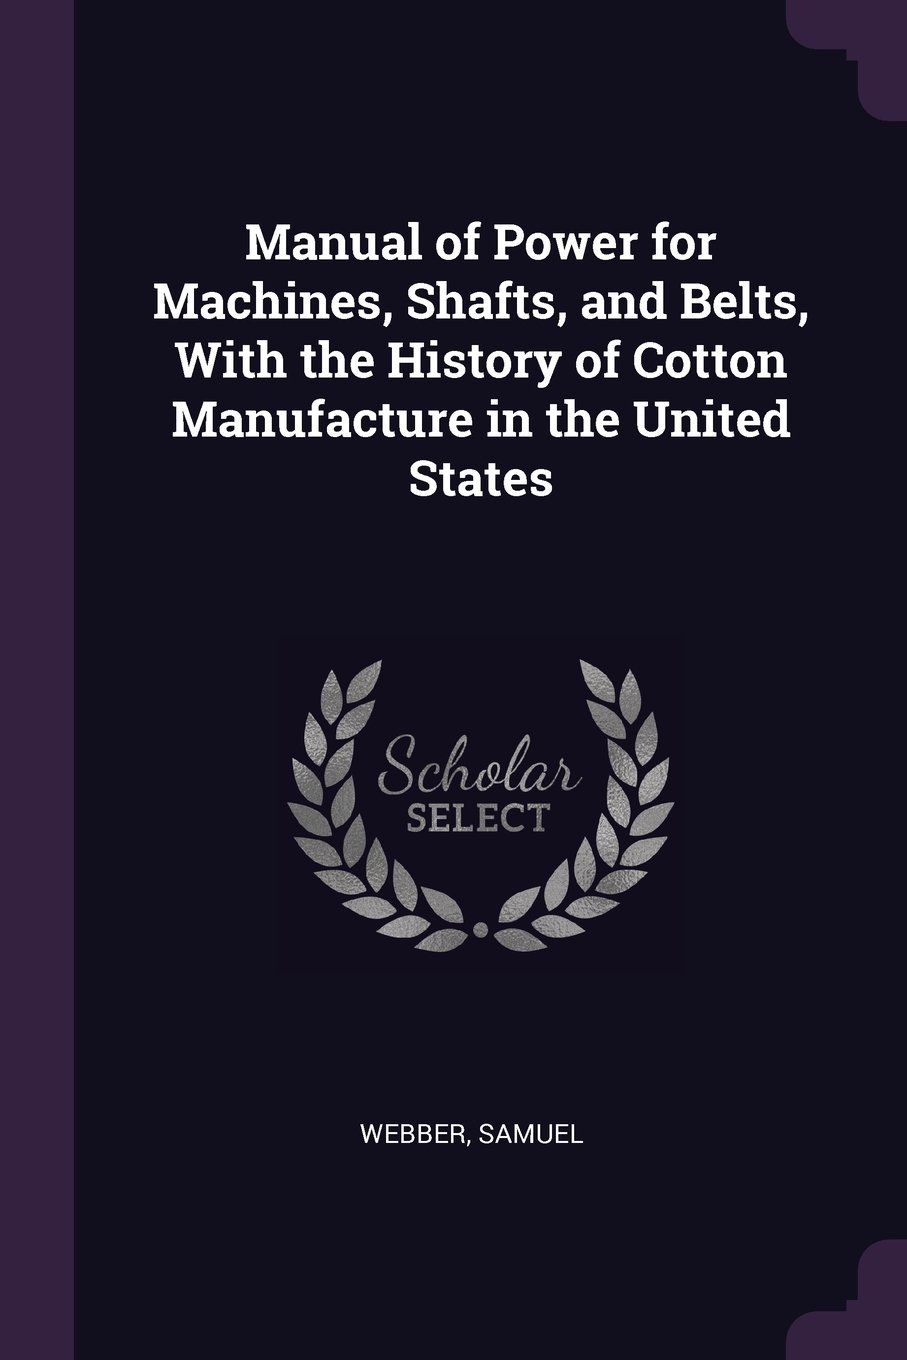 Download Manual of Power for Machines, Shafts, and Belts, with the History of Cotton Manufacture in the United States ebook